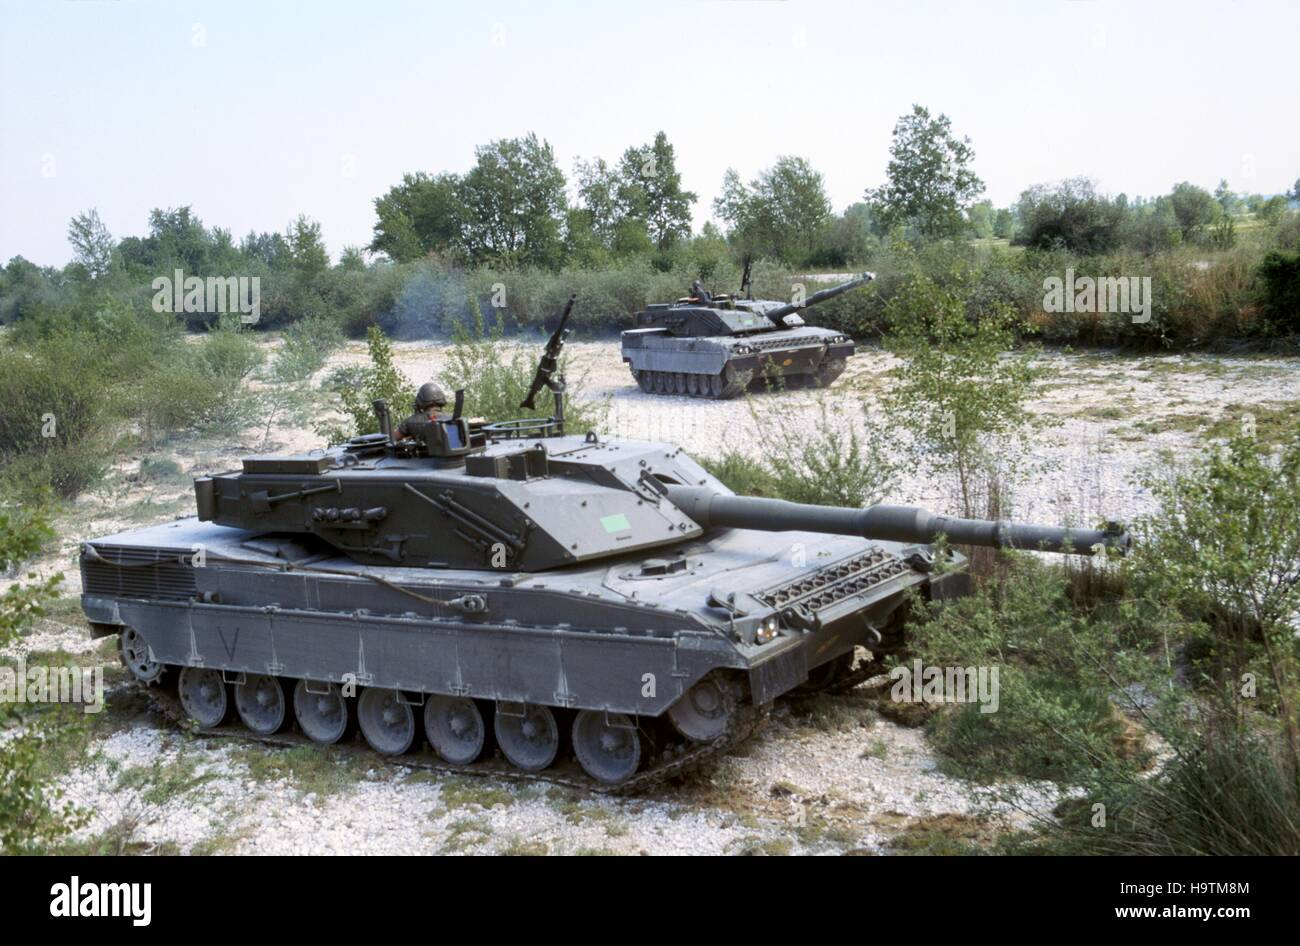 heavy battle tank - photo #44